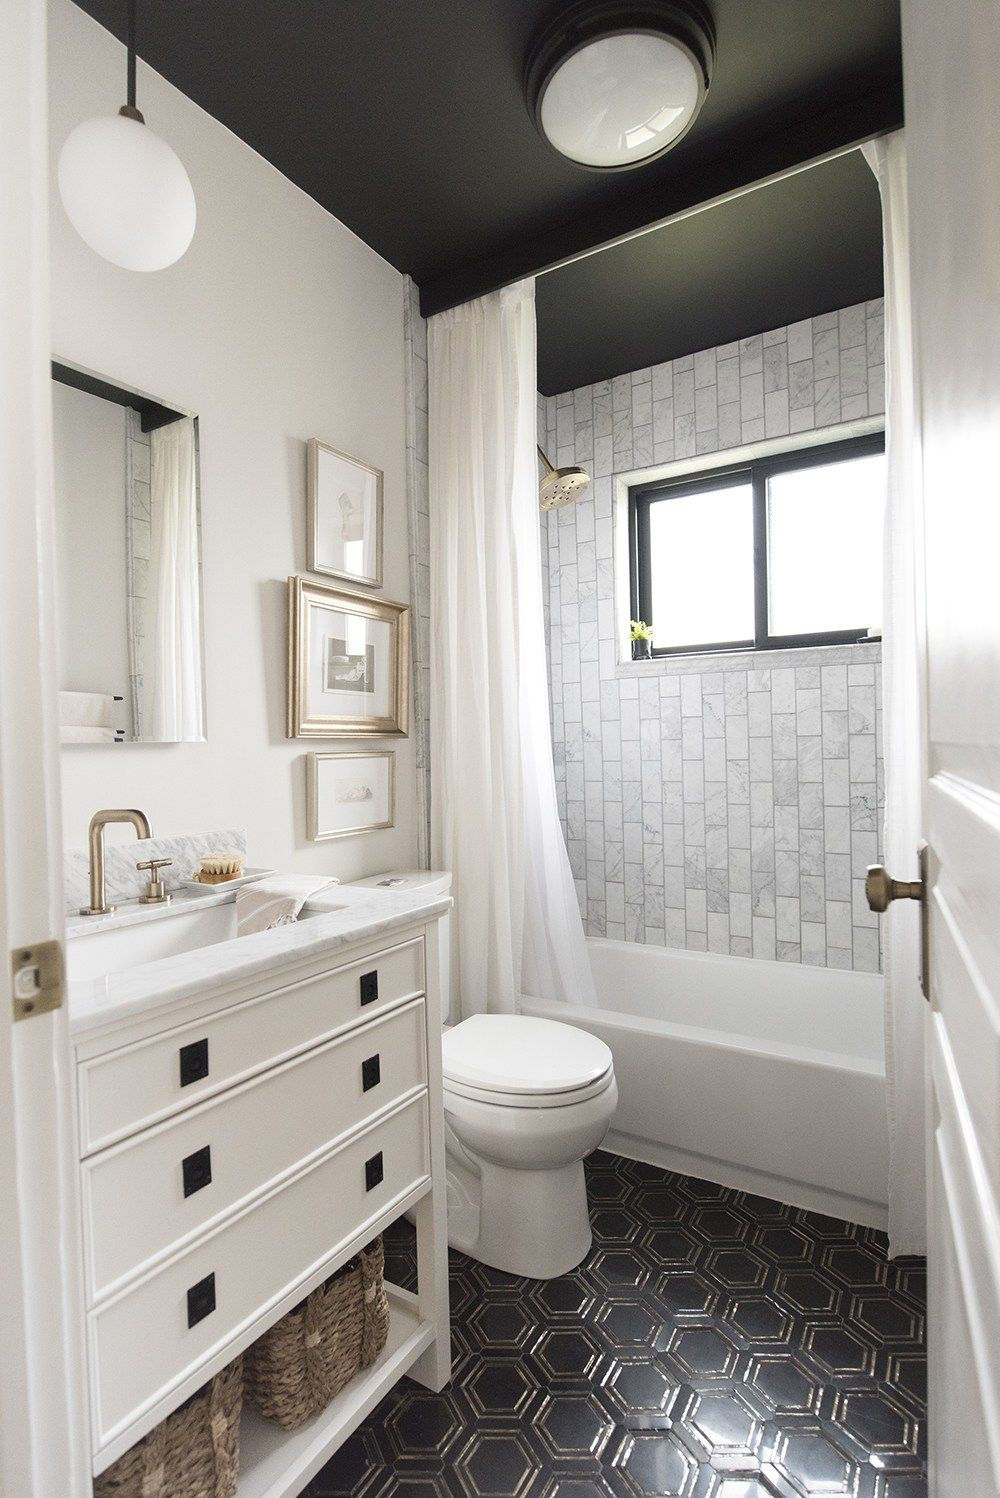 Ways To Add Value To Your Home White Subway Tile Bathroom White Bathroom Tiles Bathroom Tile Designs